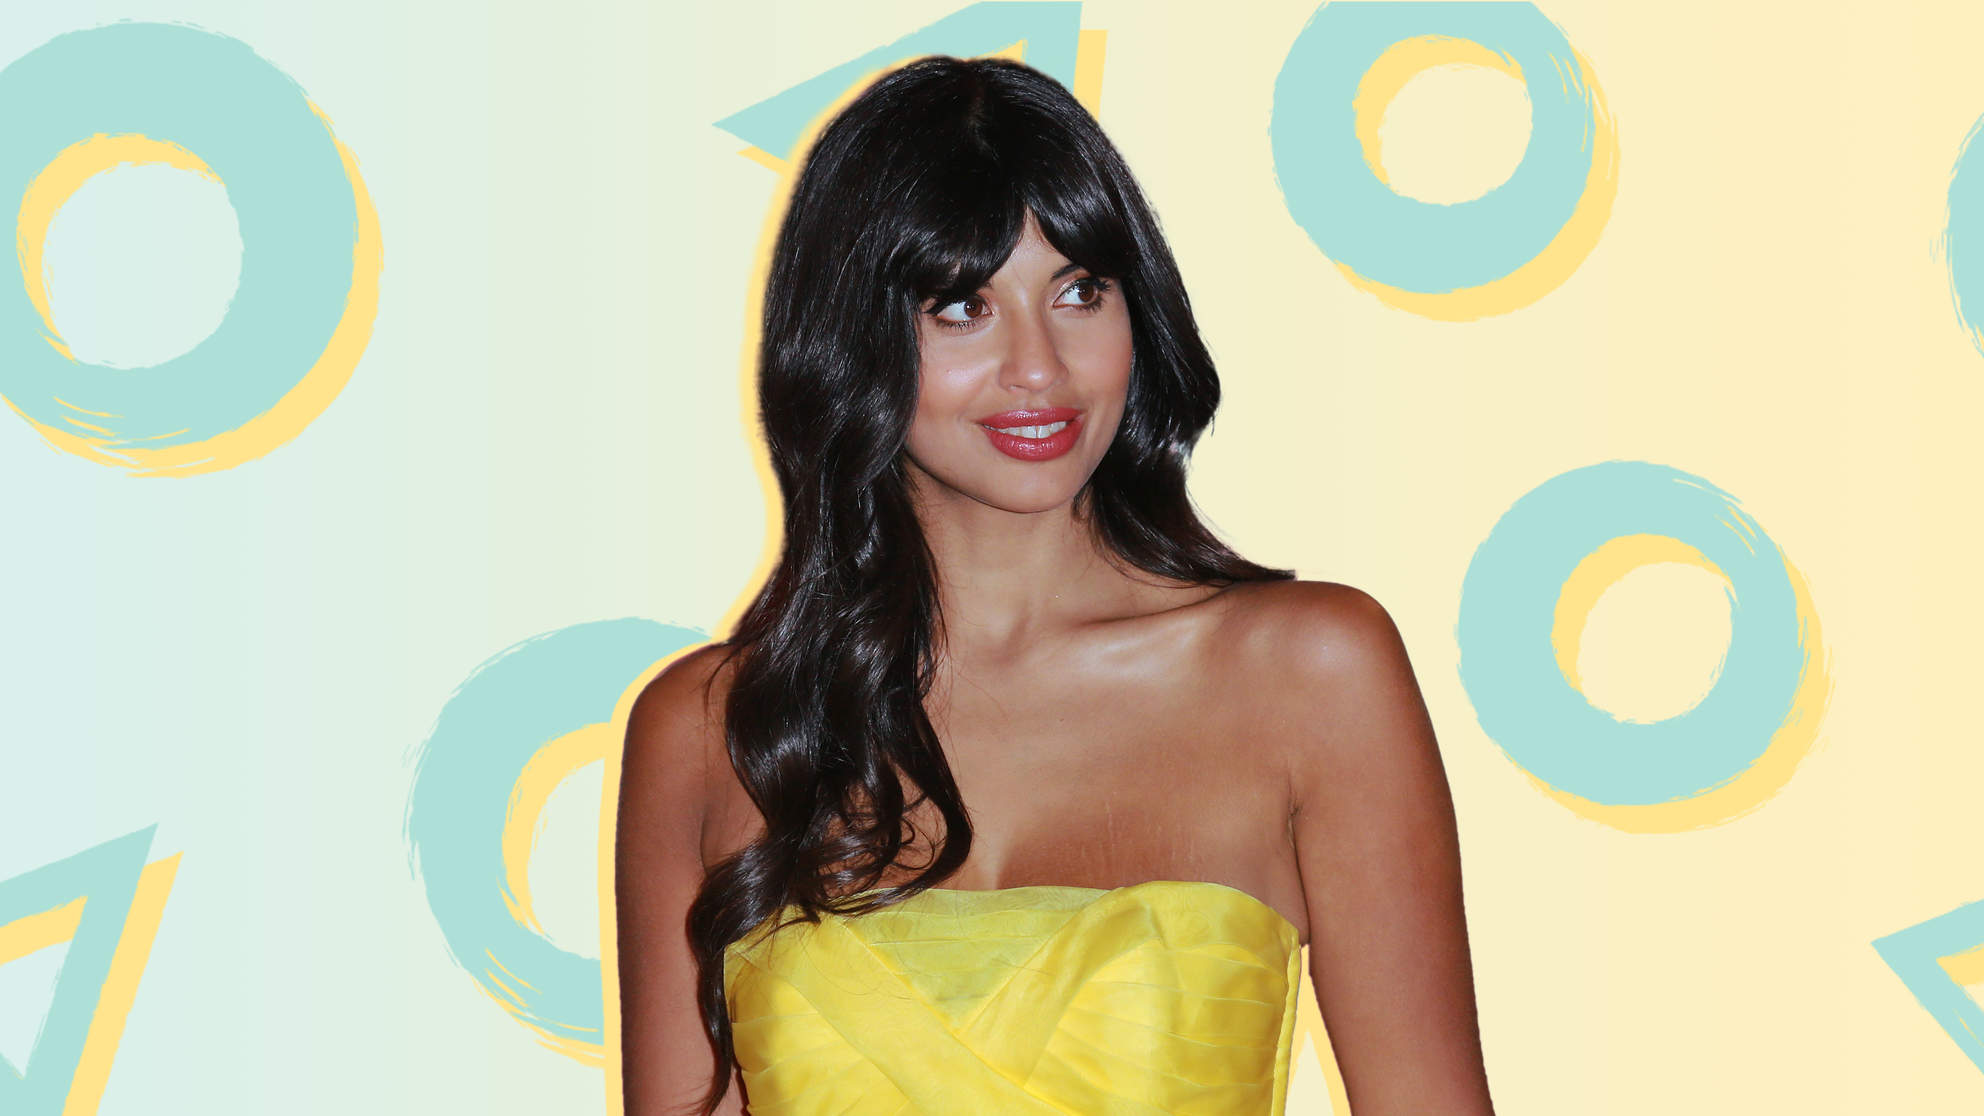 Jameela Jamil Just Zoomed In on Her 'Back Fat' to Make a Big Point About Photoshopping